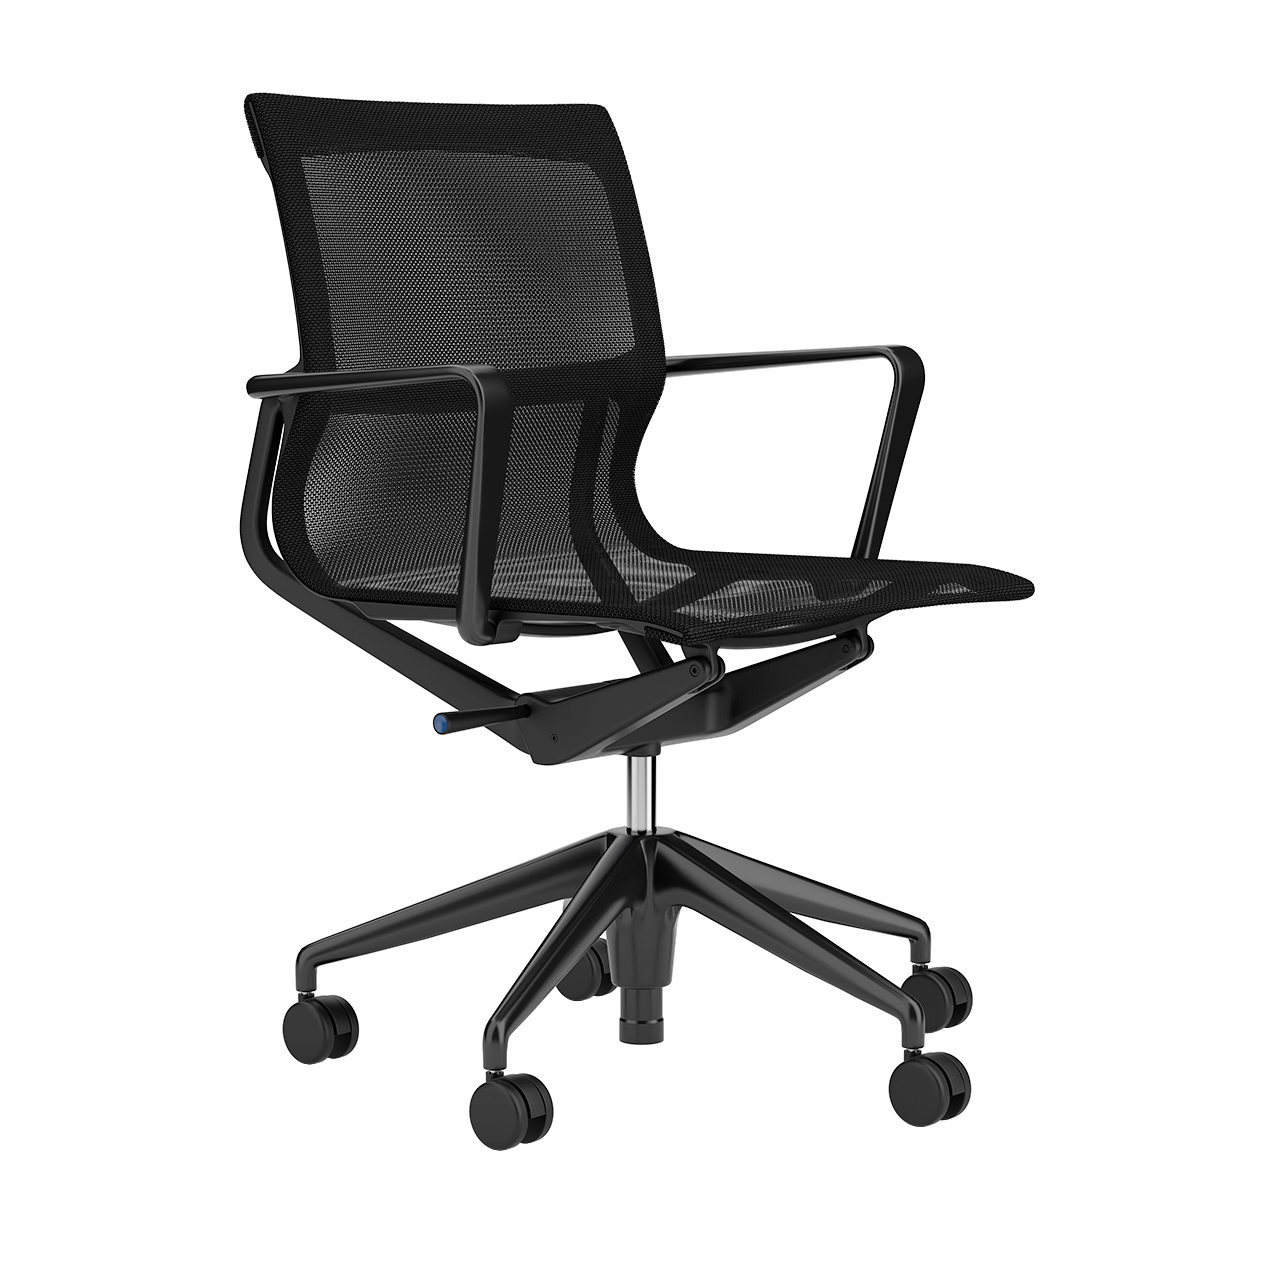 Physix Office Chair by Vitra